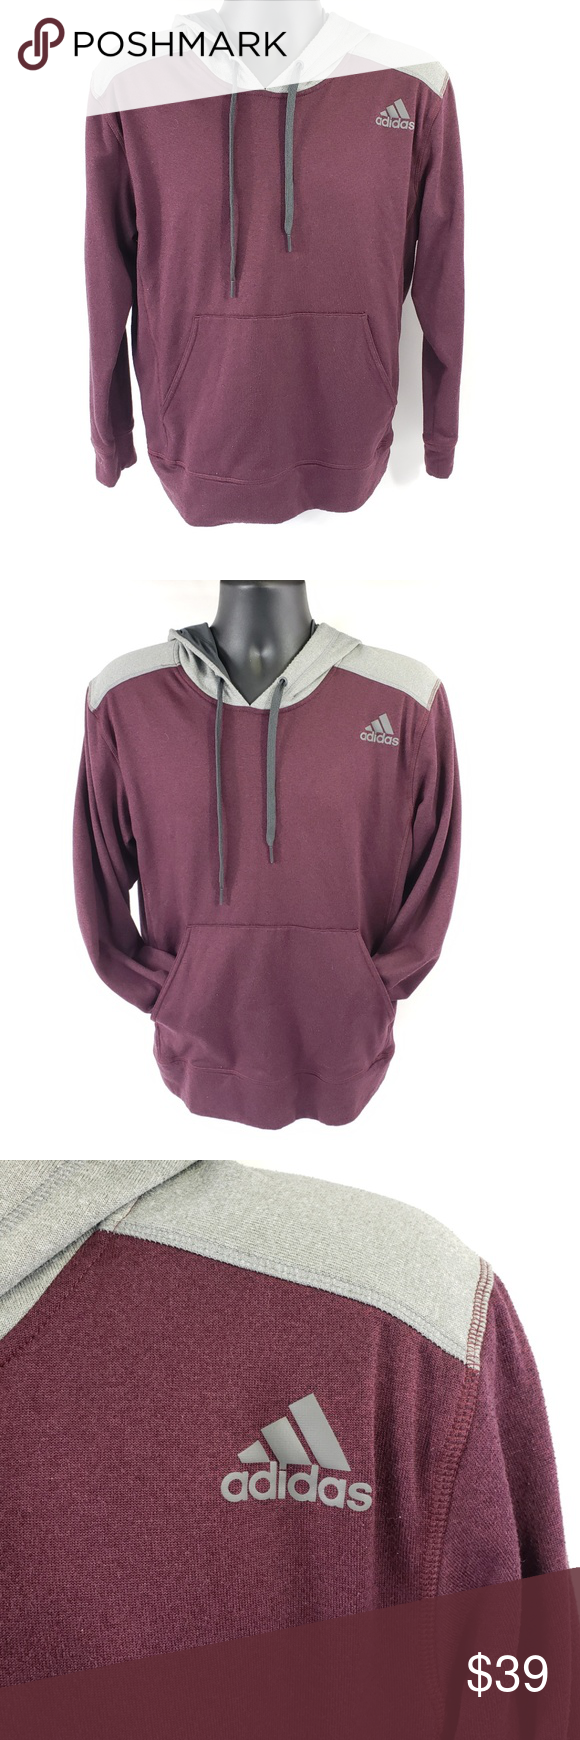 c0185d5d5358 Adidas Climawarm Ultimate Hoodie Burgundy Pullover Adidas Climawarm  Ultimate Hoodie Light Lightweight Pullover Burgundy Red Gray